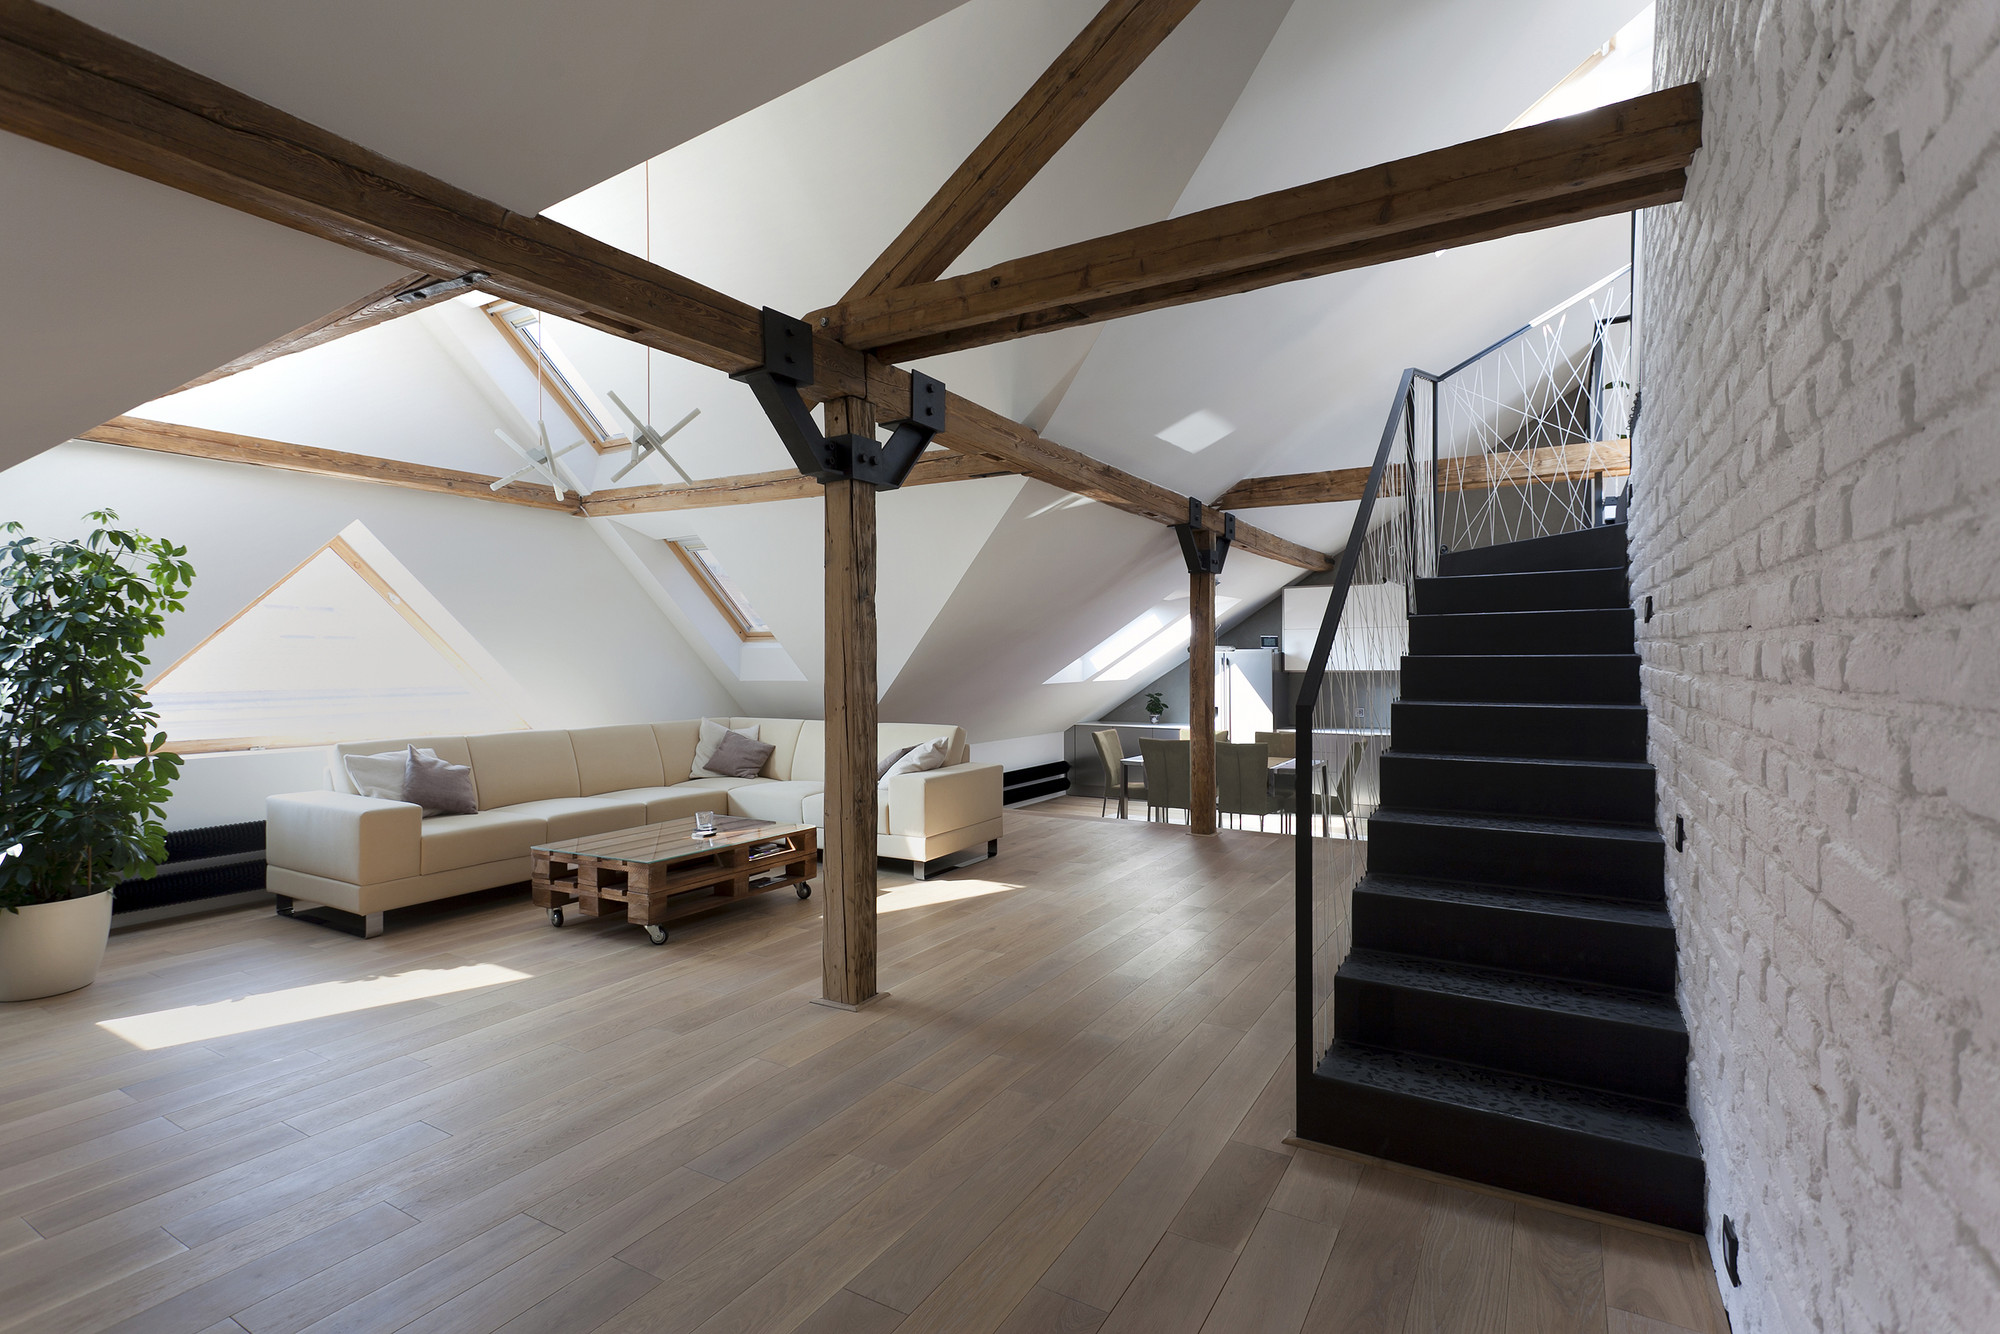 Attic Loft Reconstruction / B² Architecture, © Alexandra Timpau